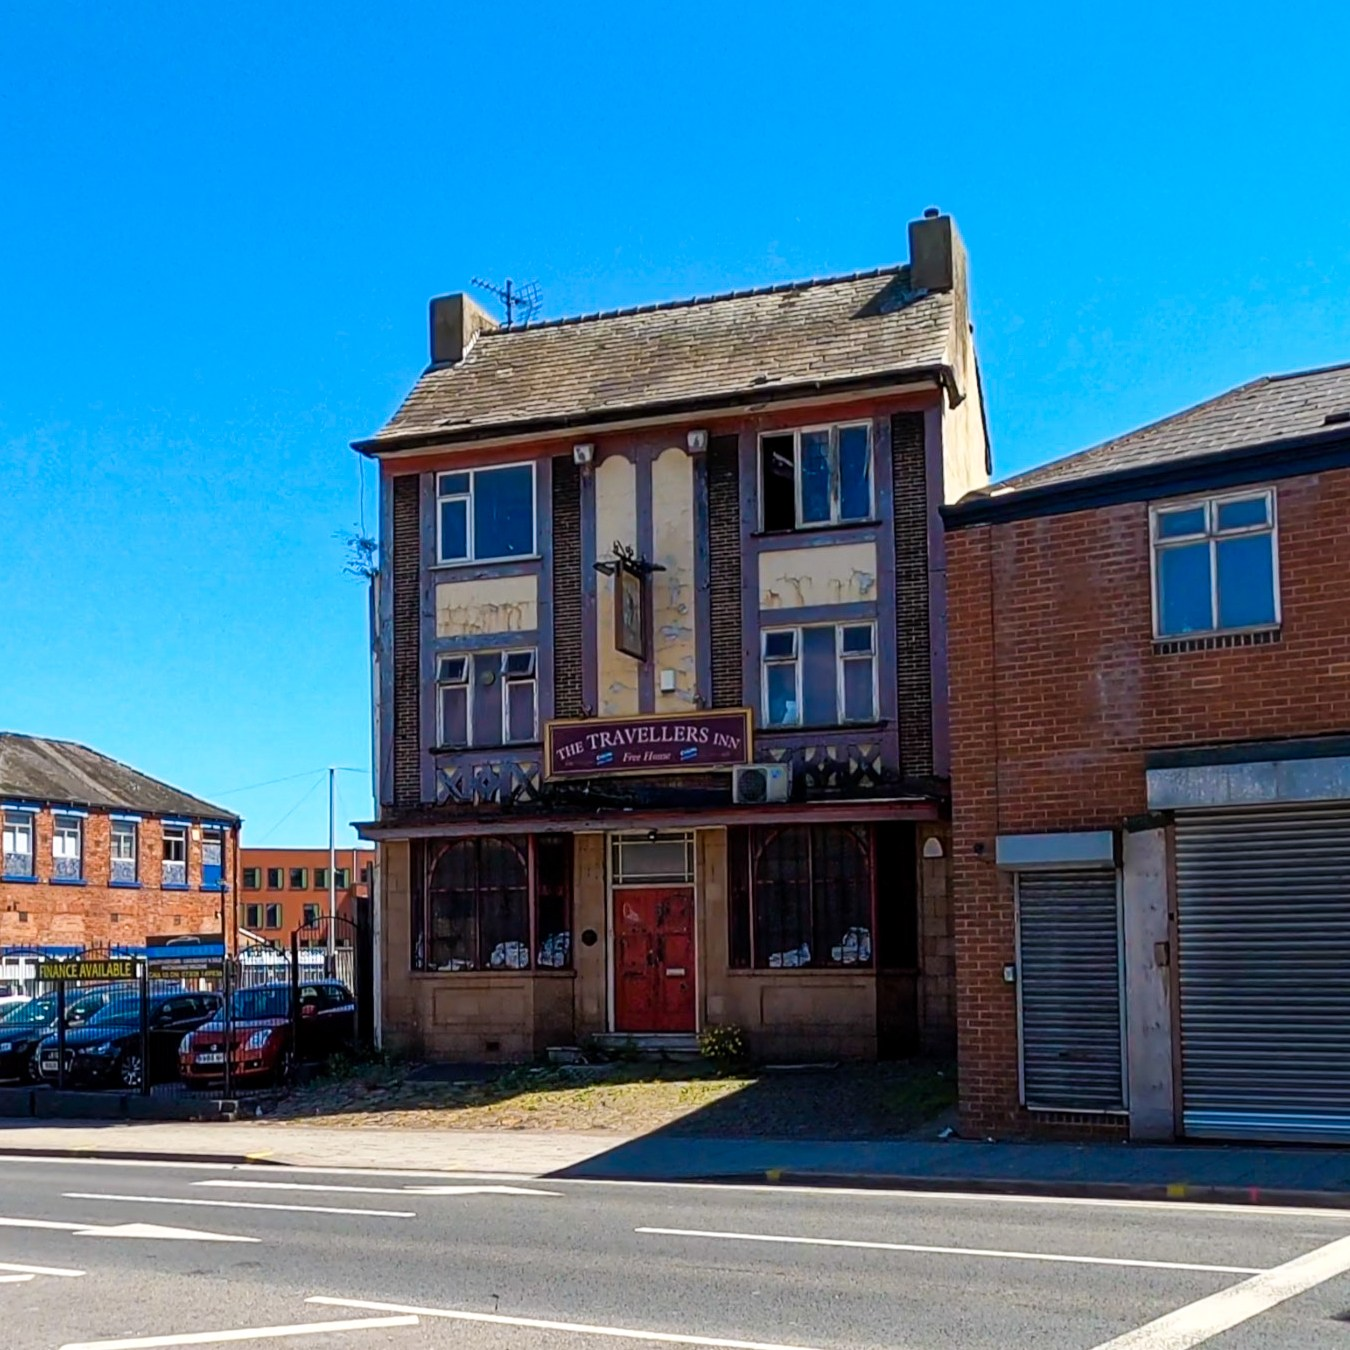 Travellers Inn, Attercliffe